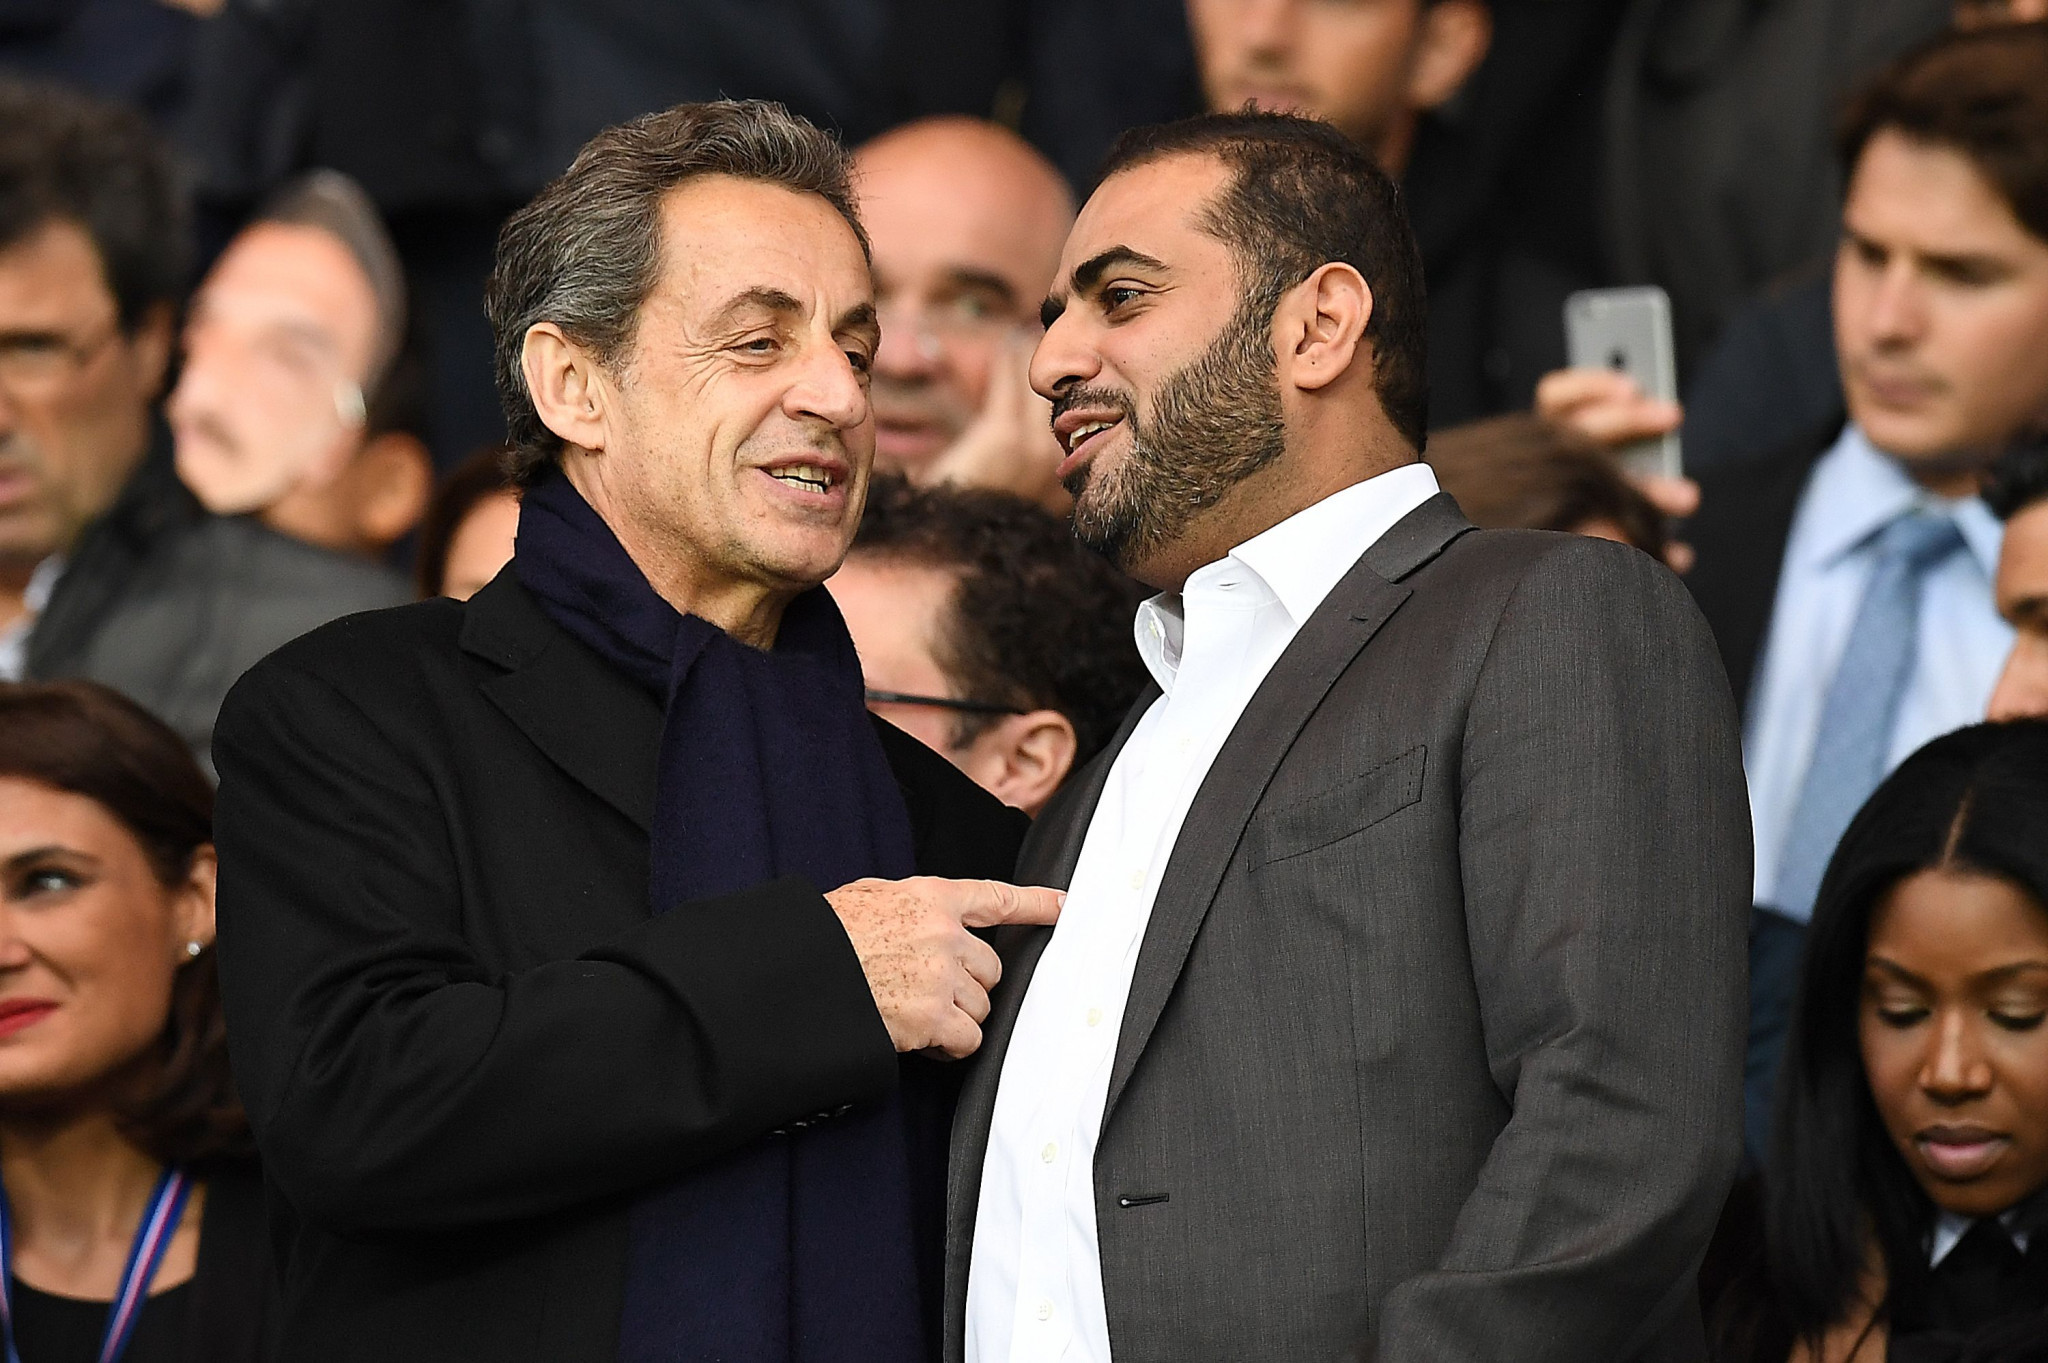 beIN Sports chief executive Yousef Al-Obaidly, pictured with former French President Nicolas Sarkozy, is facing allegations of active corruption over Doha's bid for the IAAF World Championships ©Getty Images